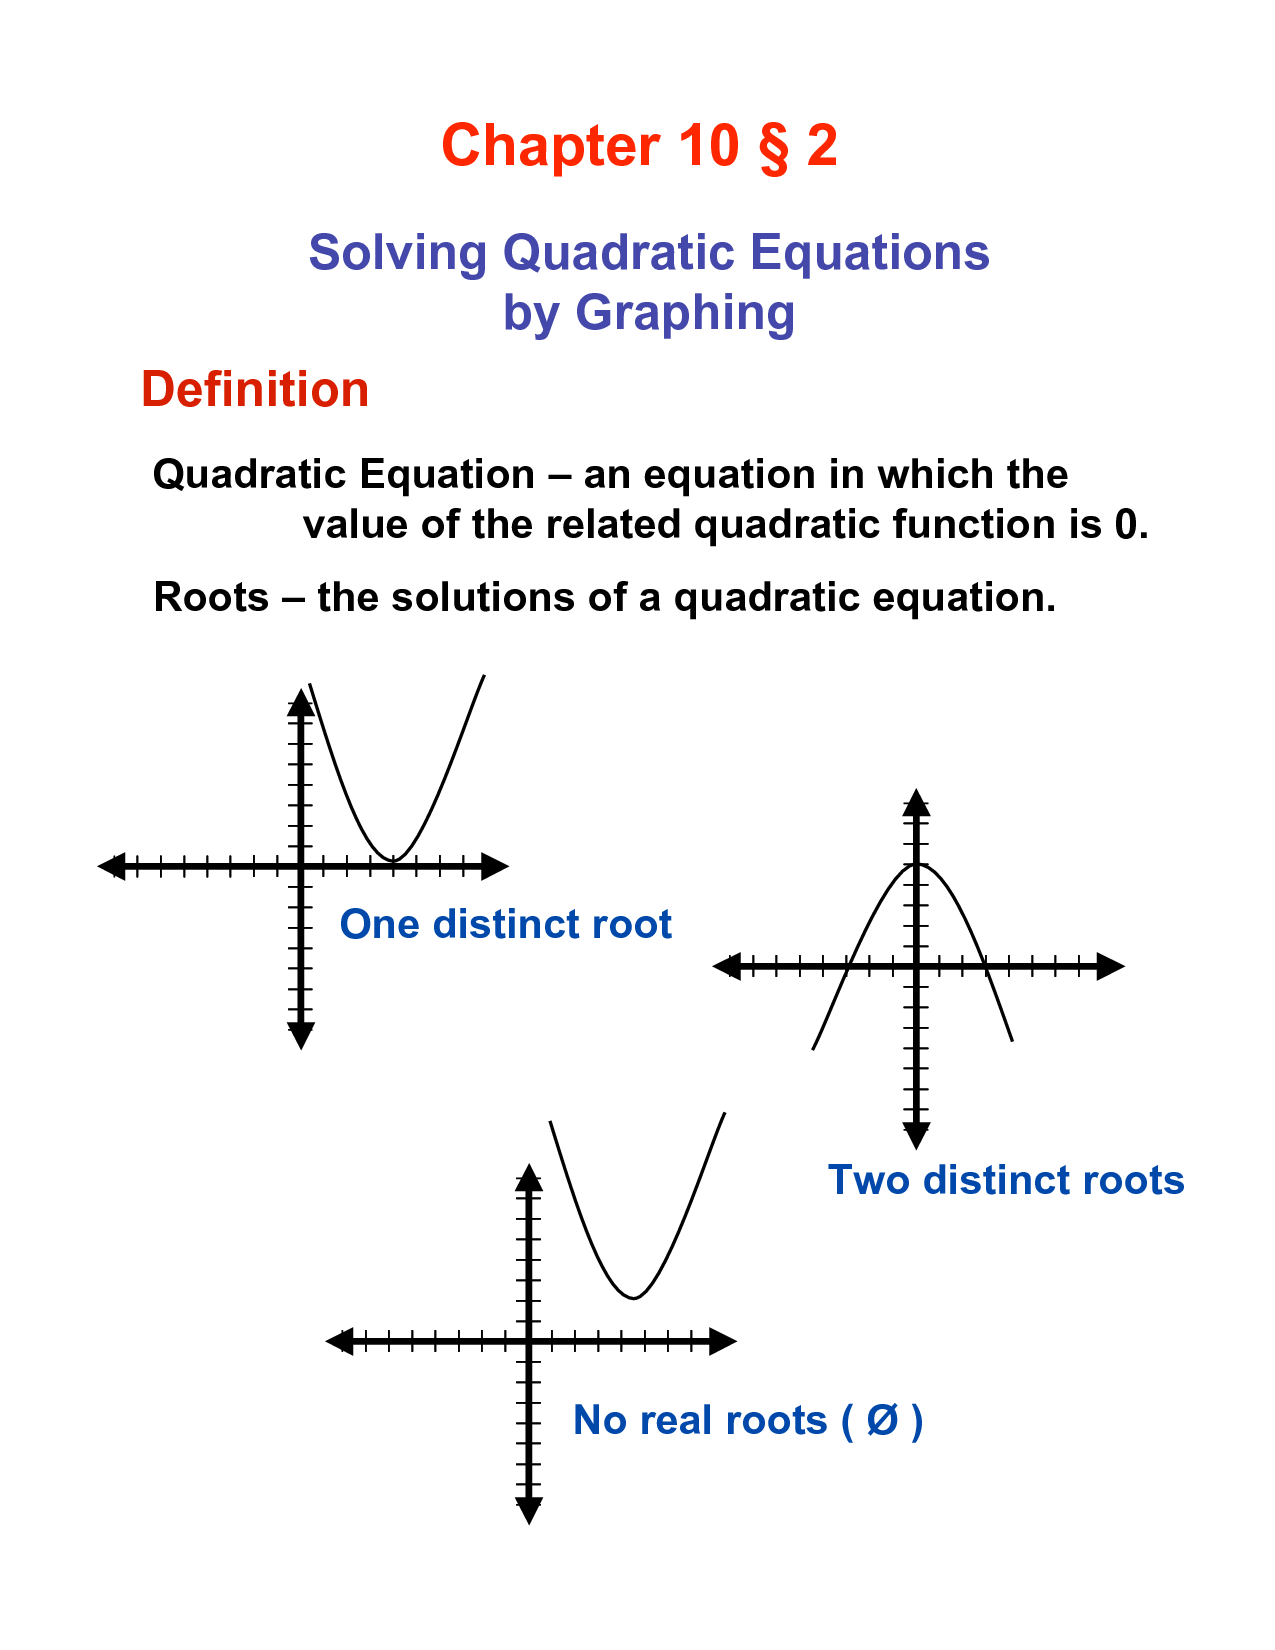 Definition And Examples Of Graphing Quadratic Equations Their Electromagnetic Relay Equation Roots Math School Class